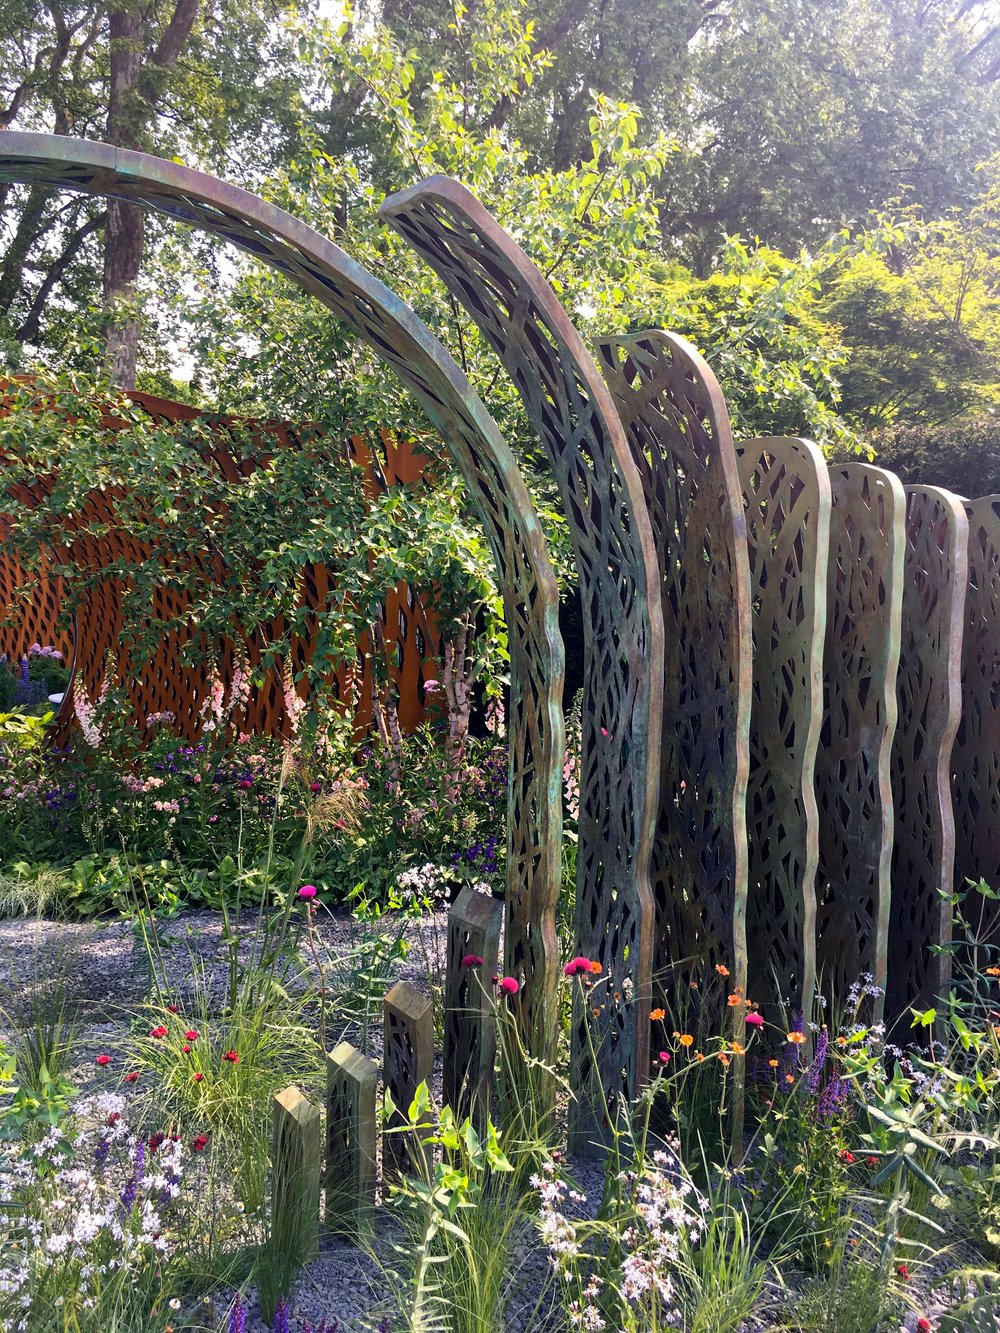 Impressive structures in this show garden designed by Nic Howard